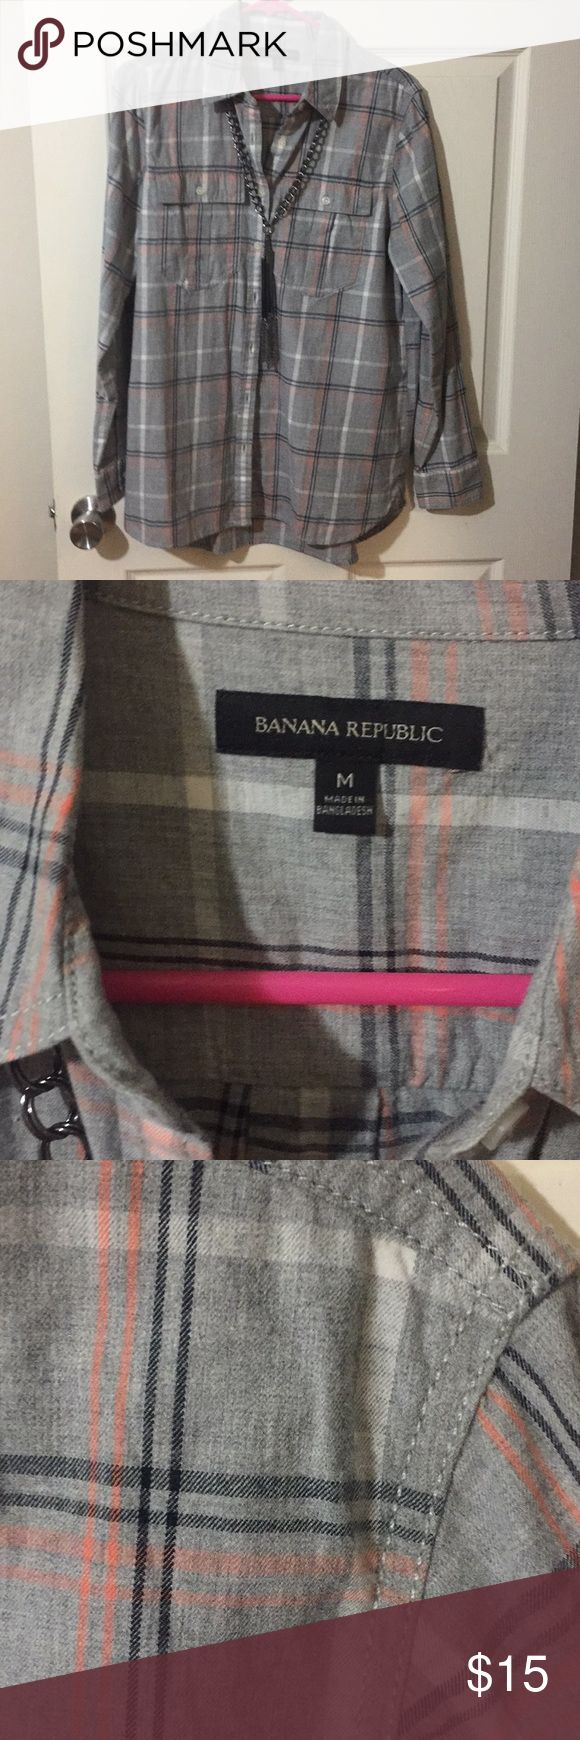 Banana Republic Plaid Button Down Shirt Gray with coral and black plaid. Size Med. 100% cotton. Worn one time. Banana Republic Tops Button Down Shirts